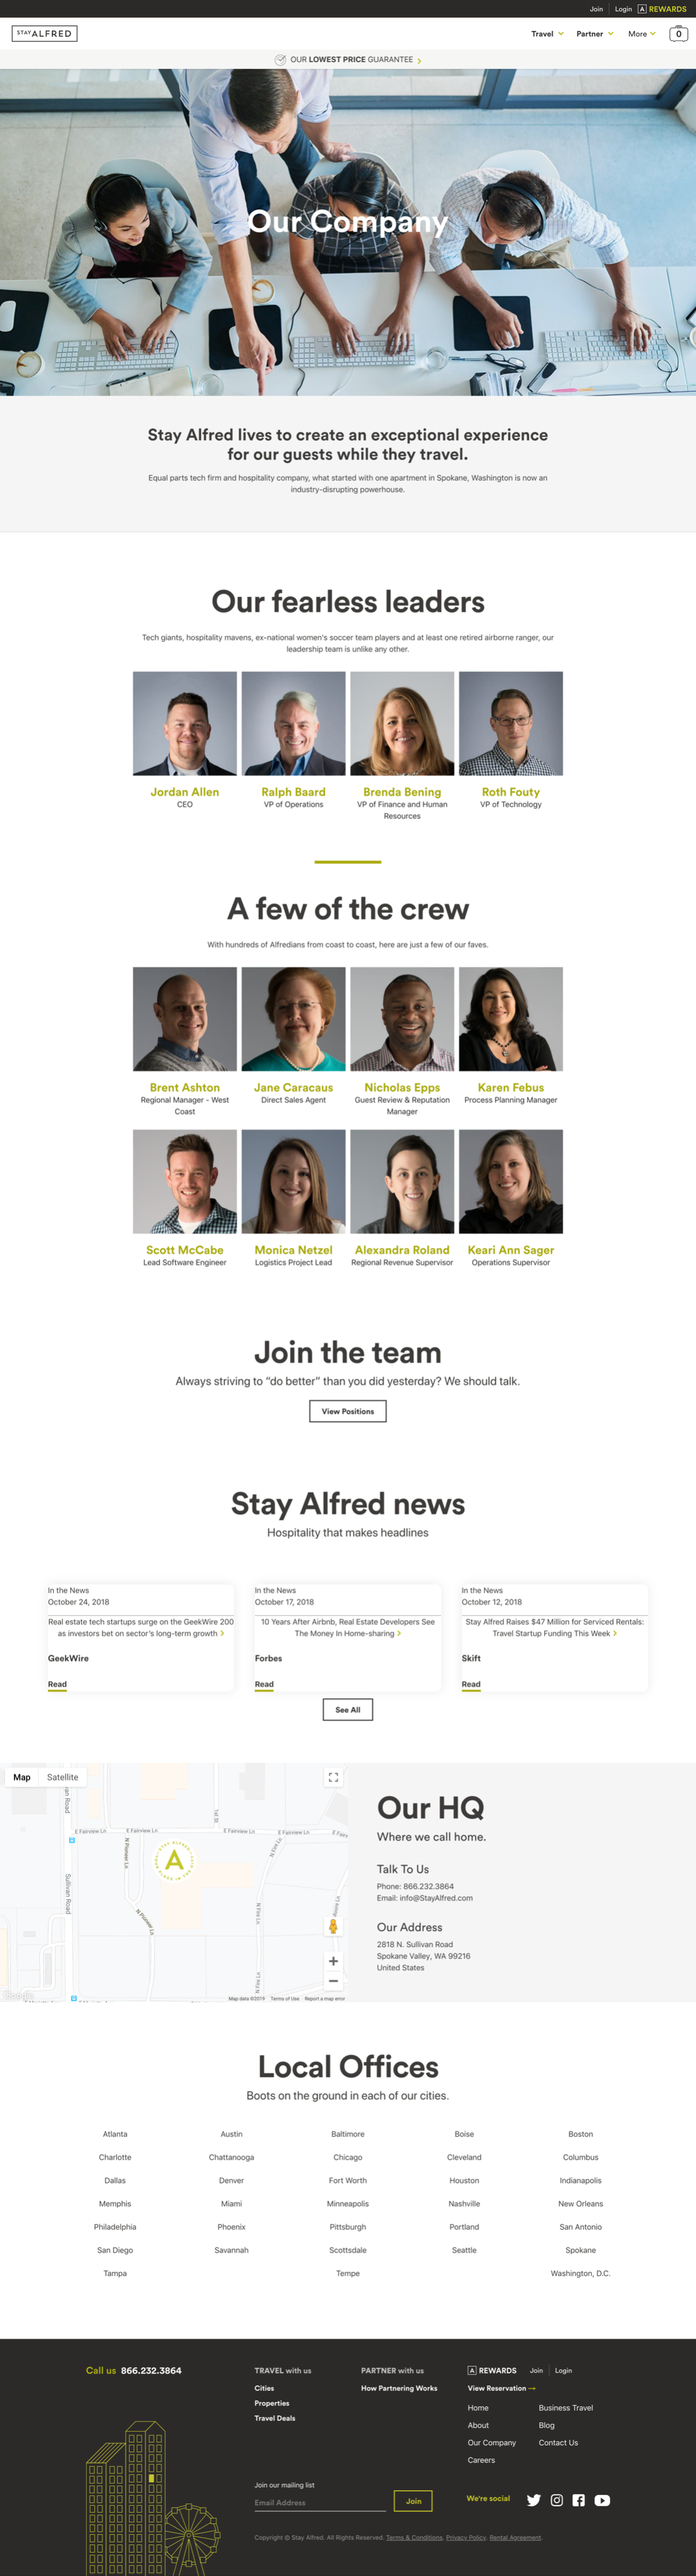 Stay Alfred Company Page V1